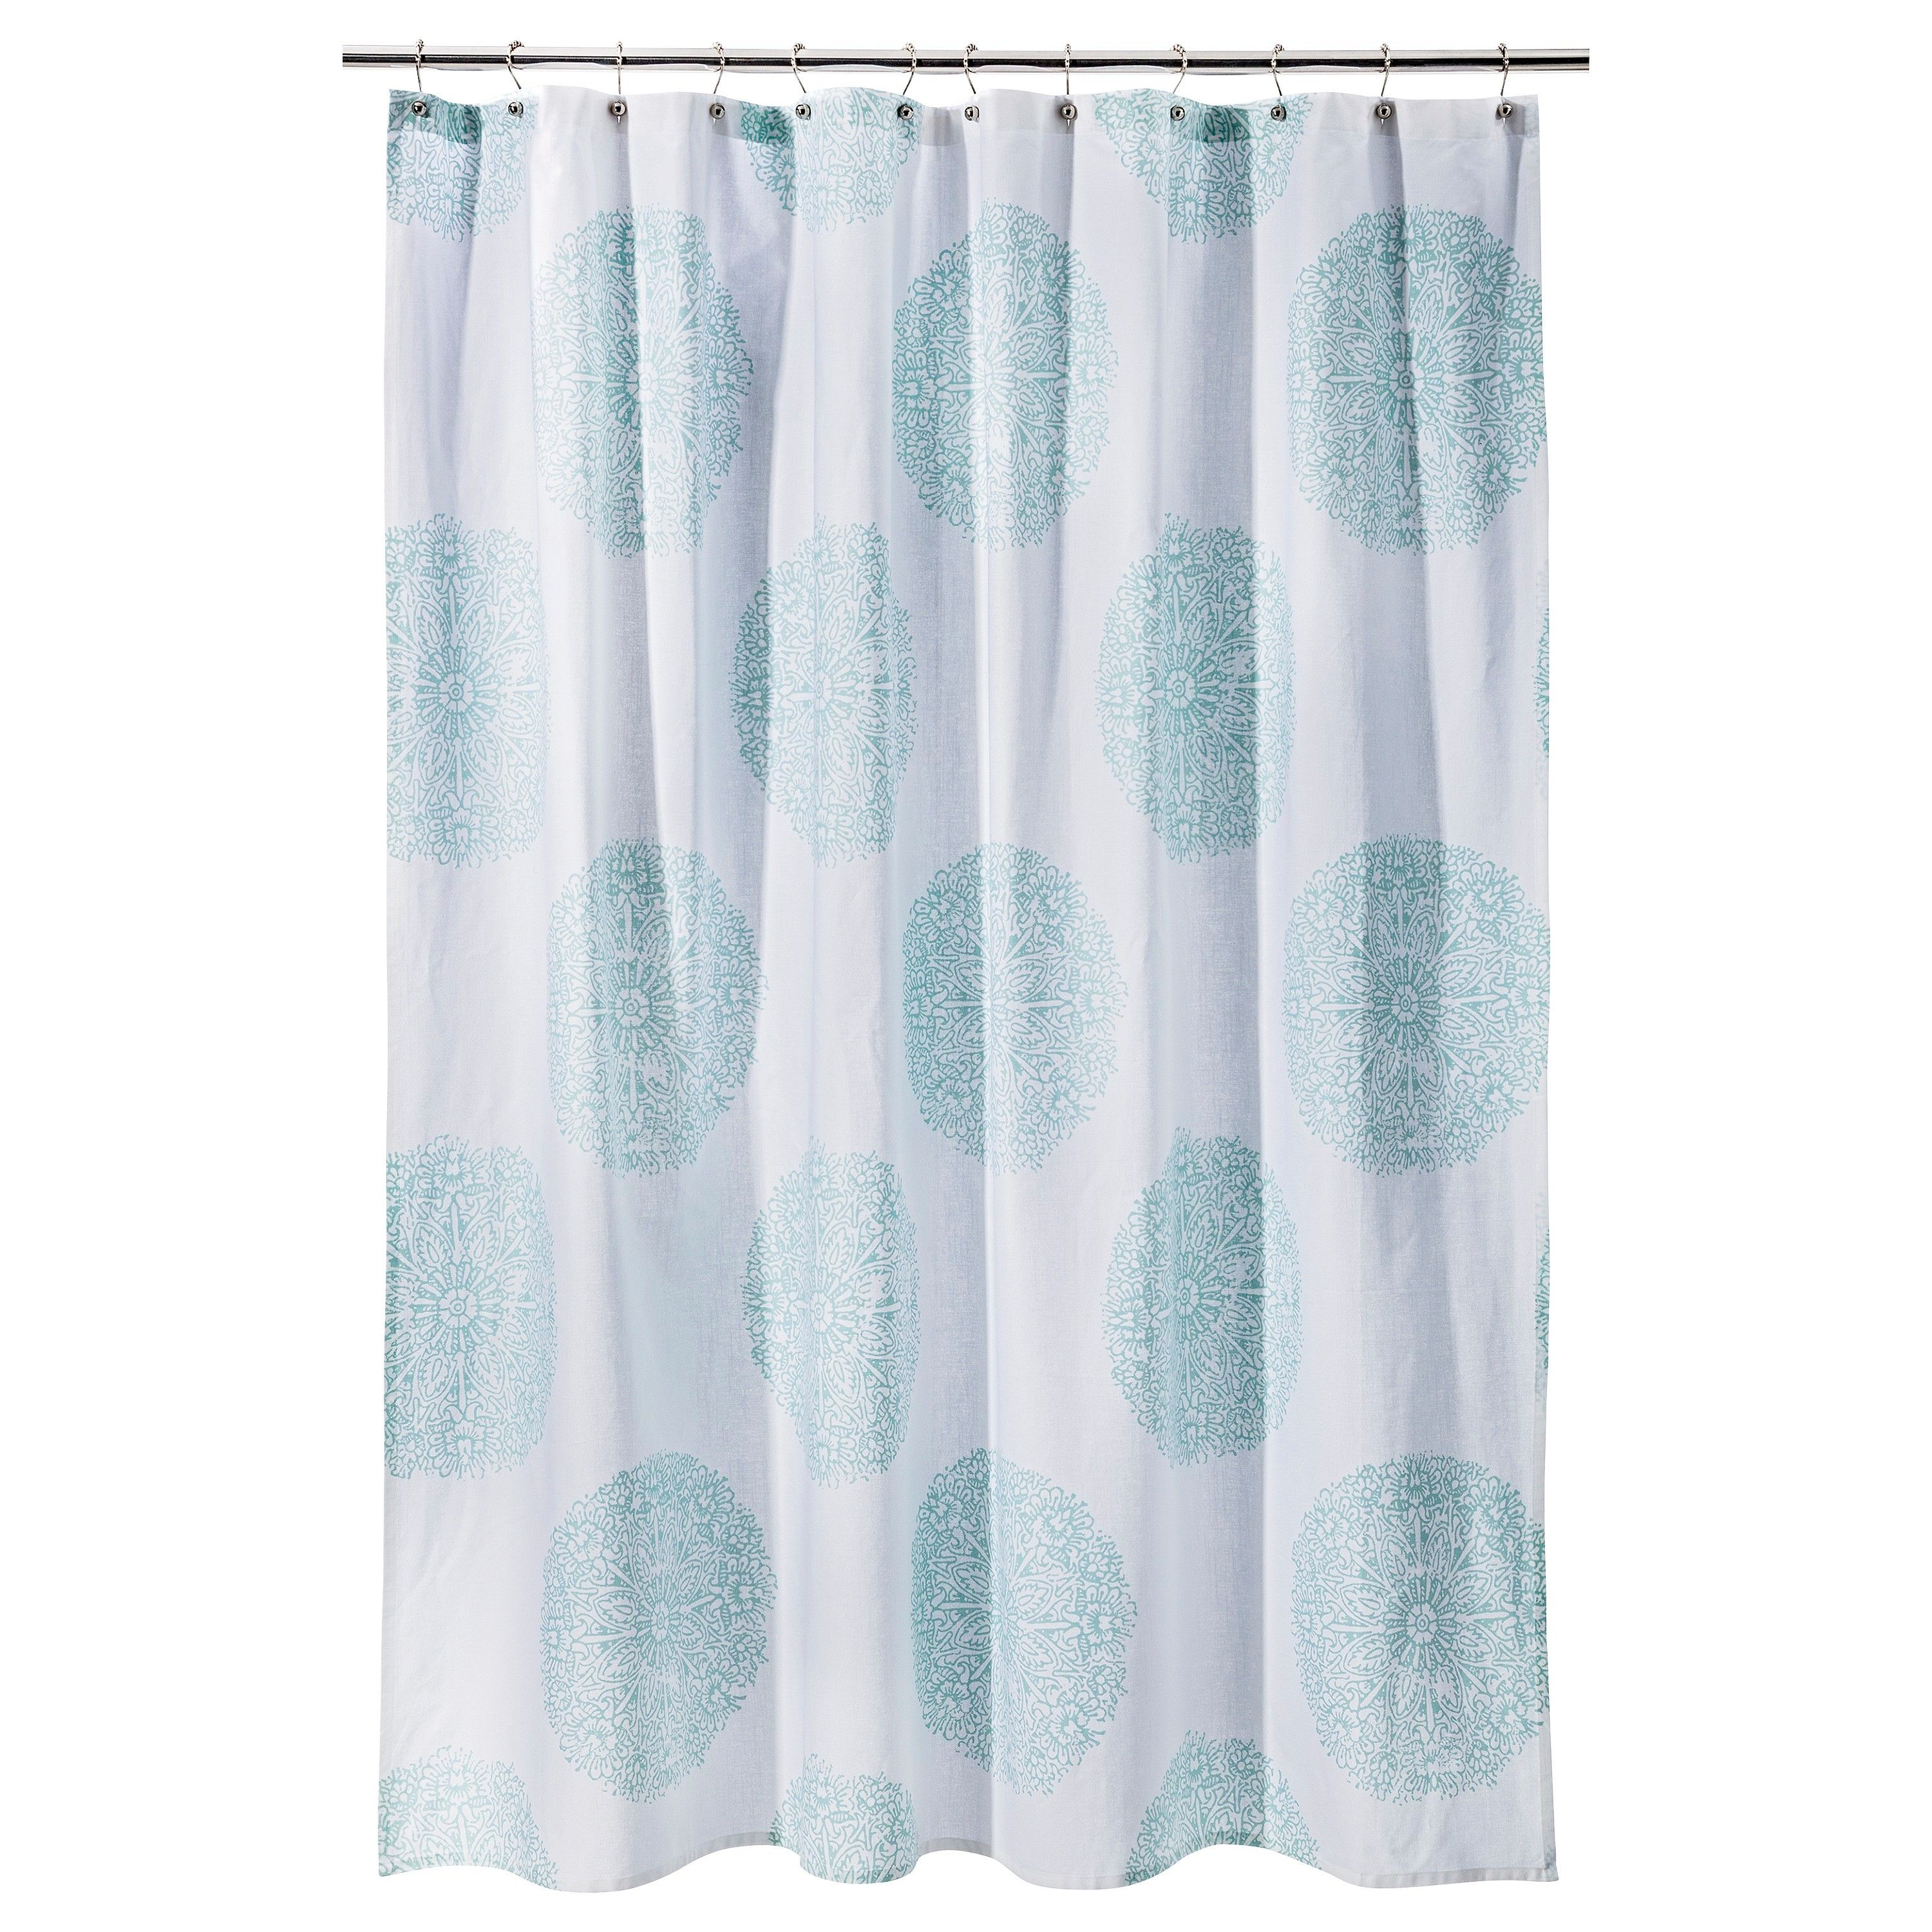 Threshold Medallion Shower Curtain Medallion Shower Curtain